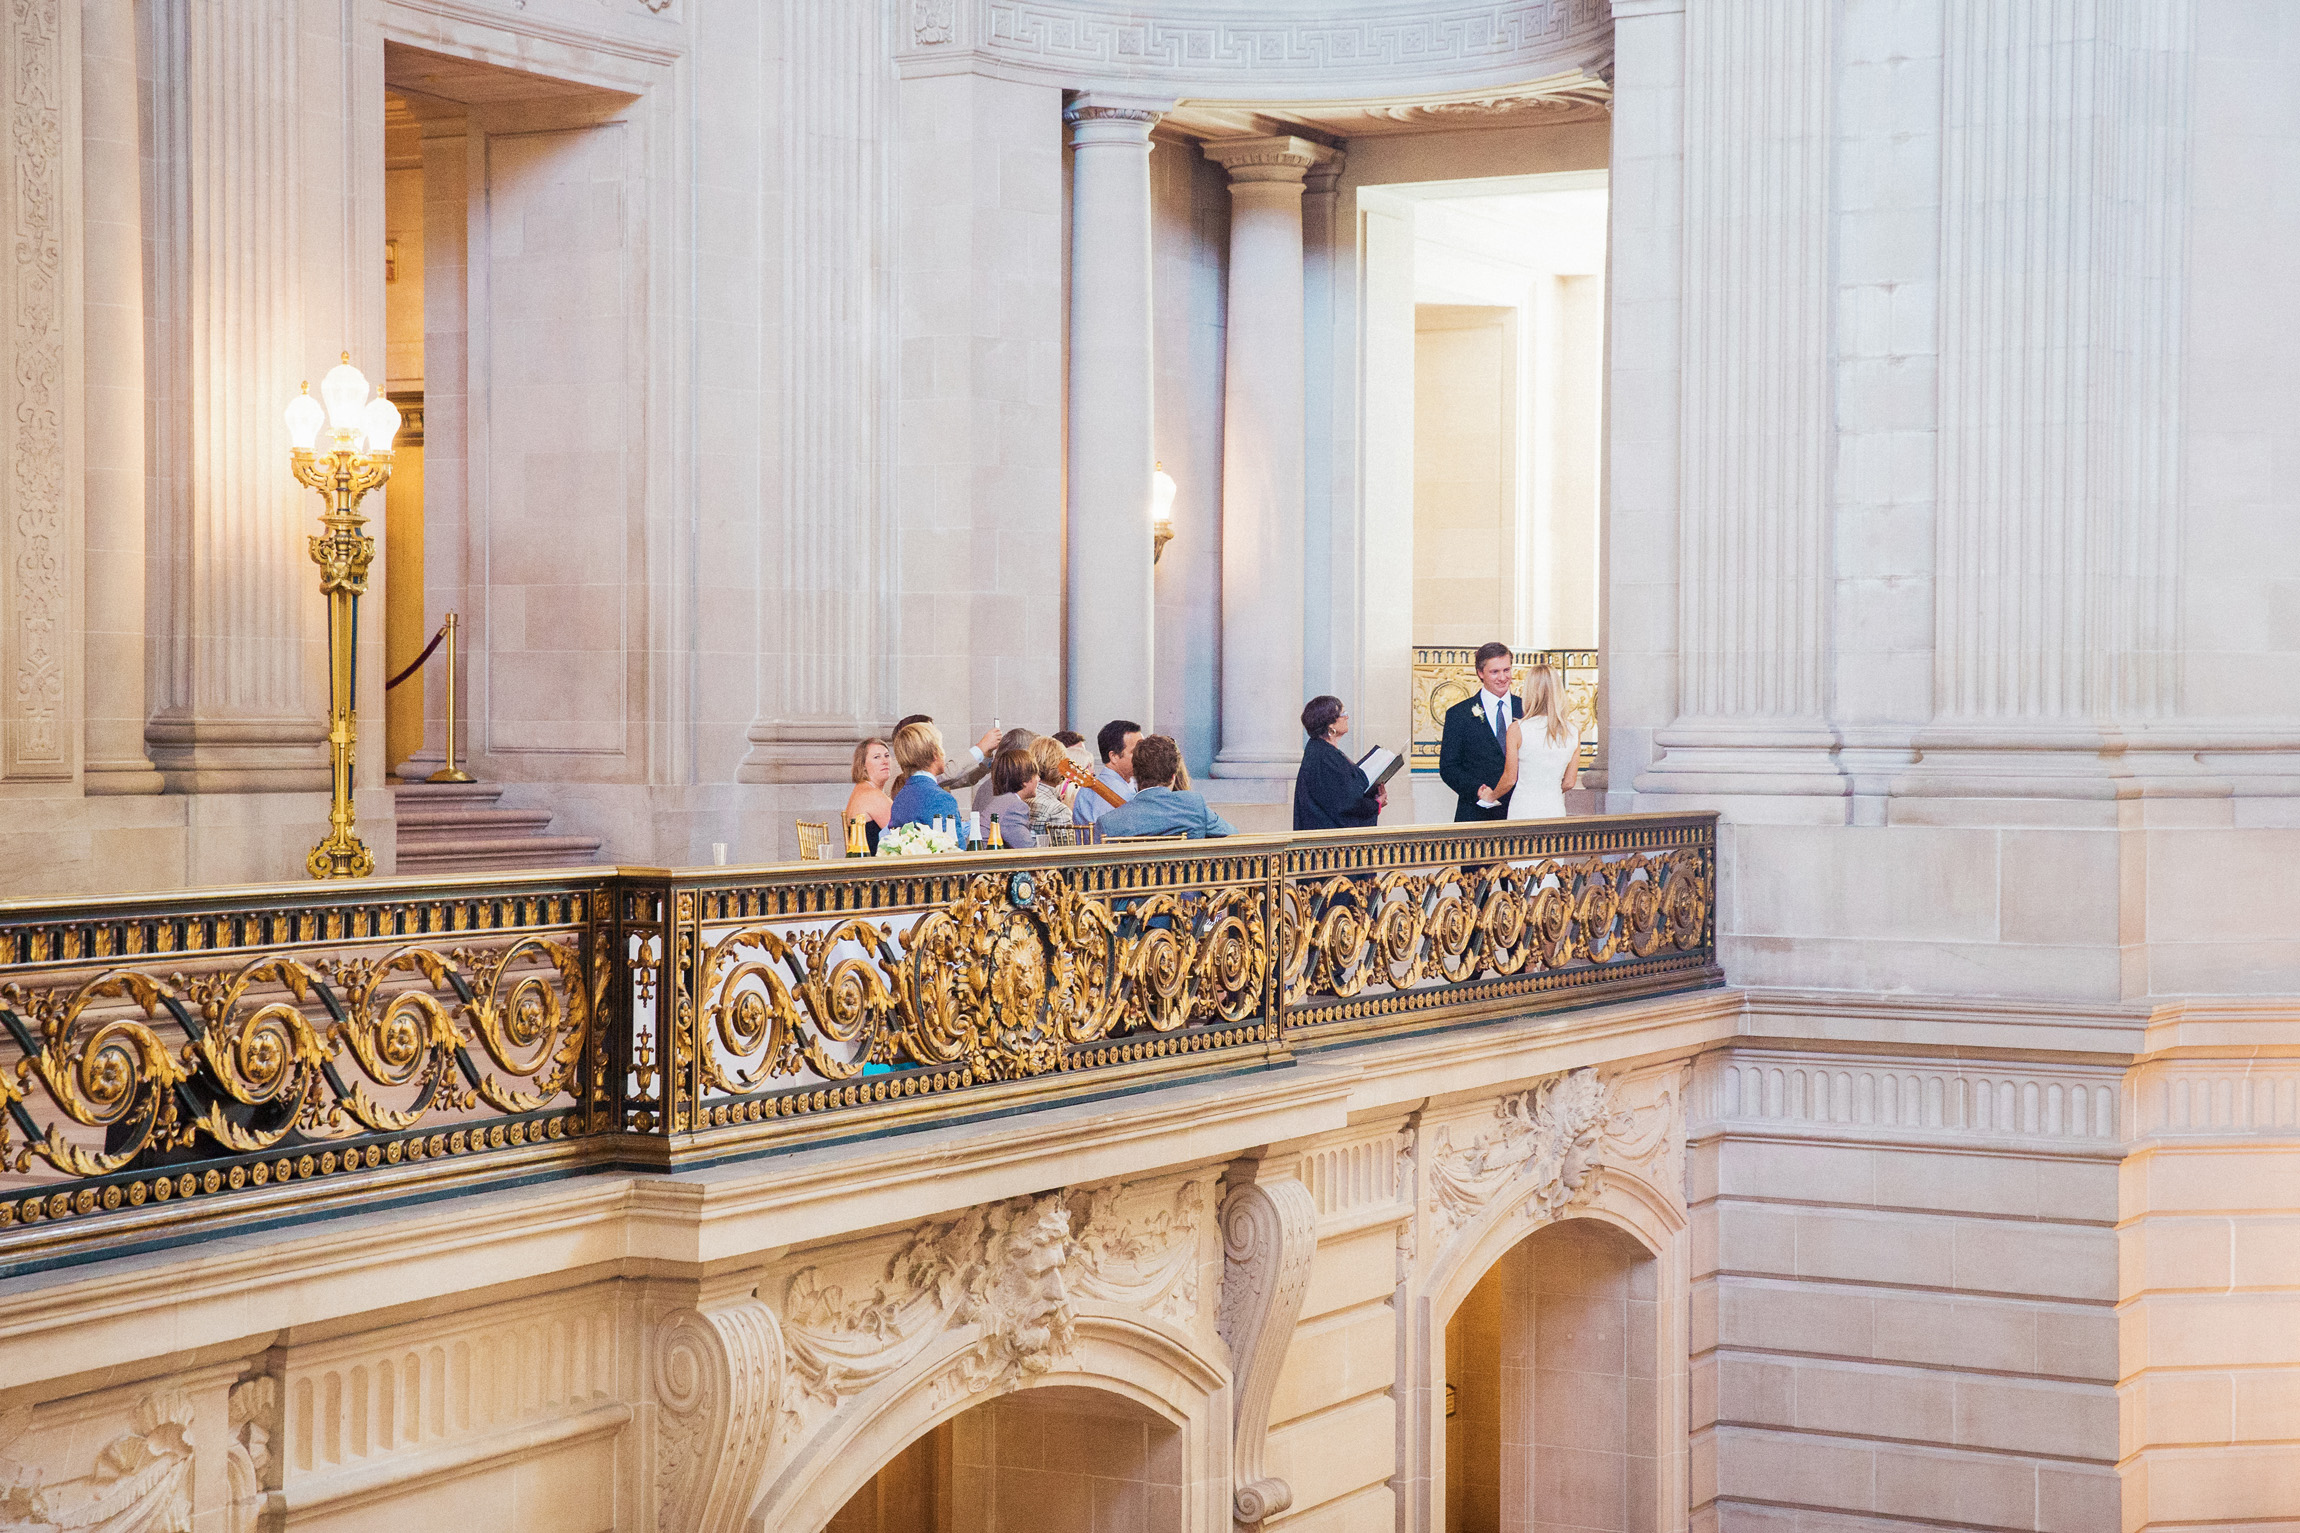 042_janaeshieldsphotography_sanfrancisco_cityhall_weddings.jpg